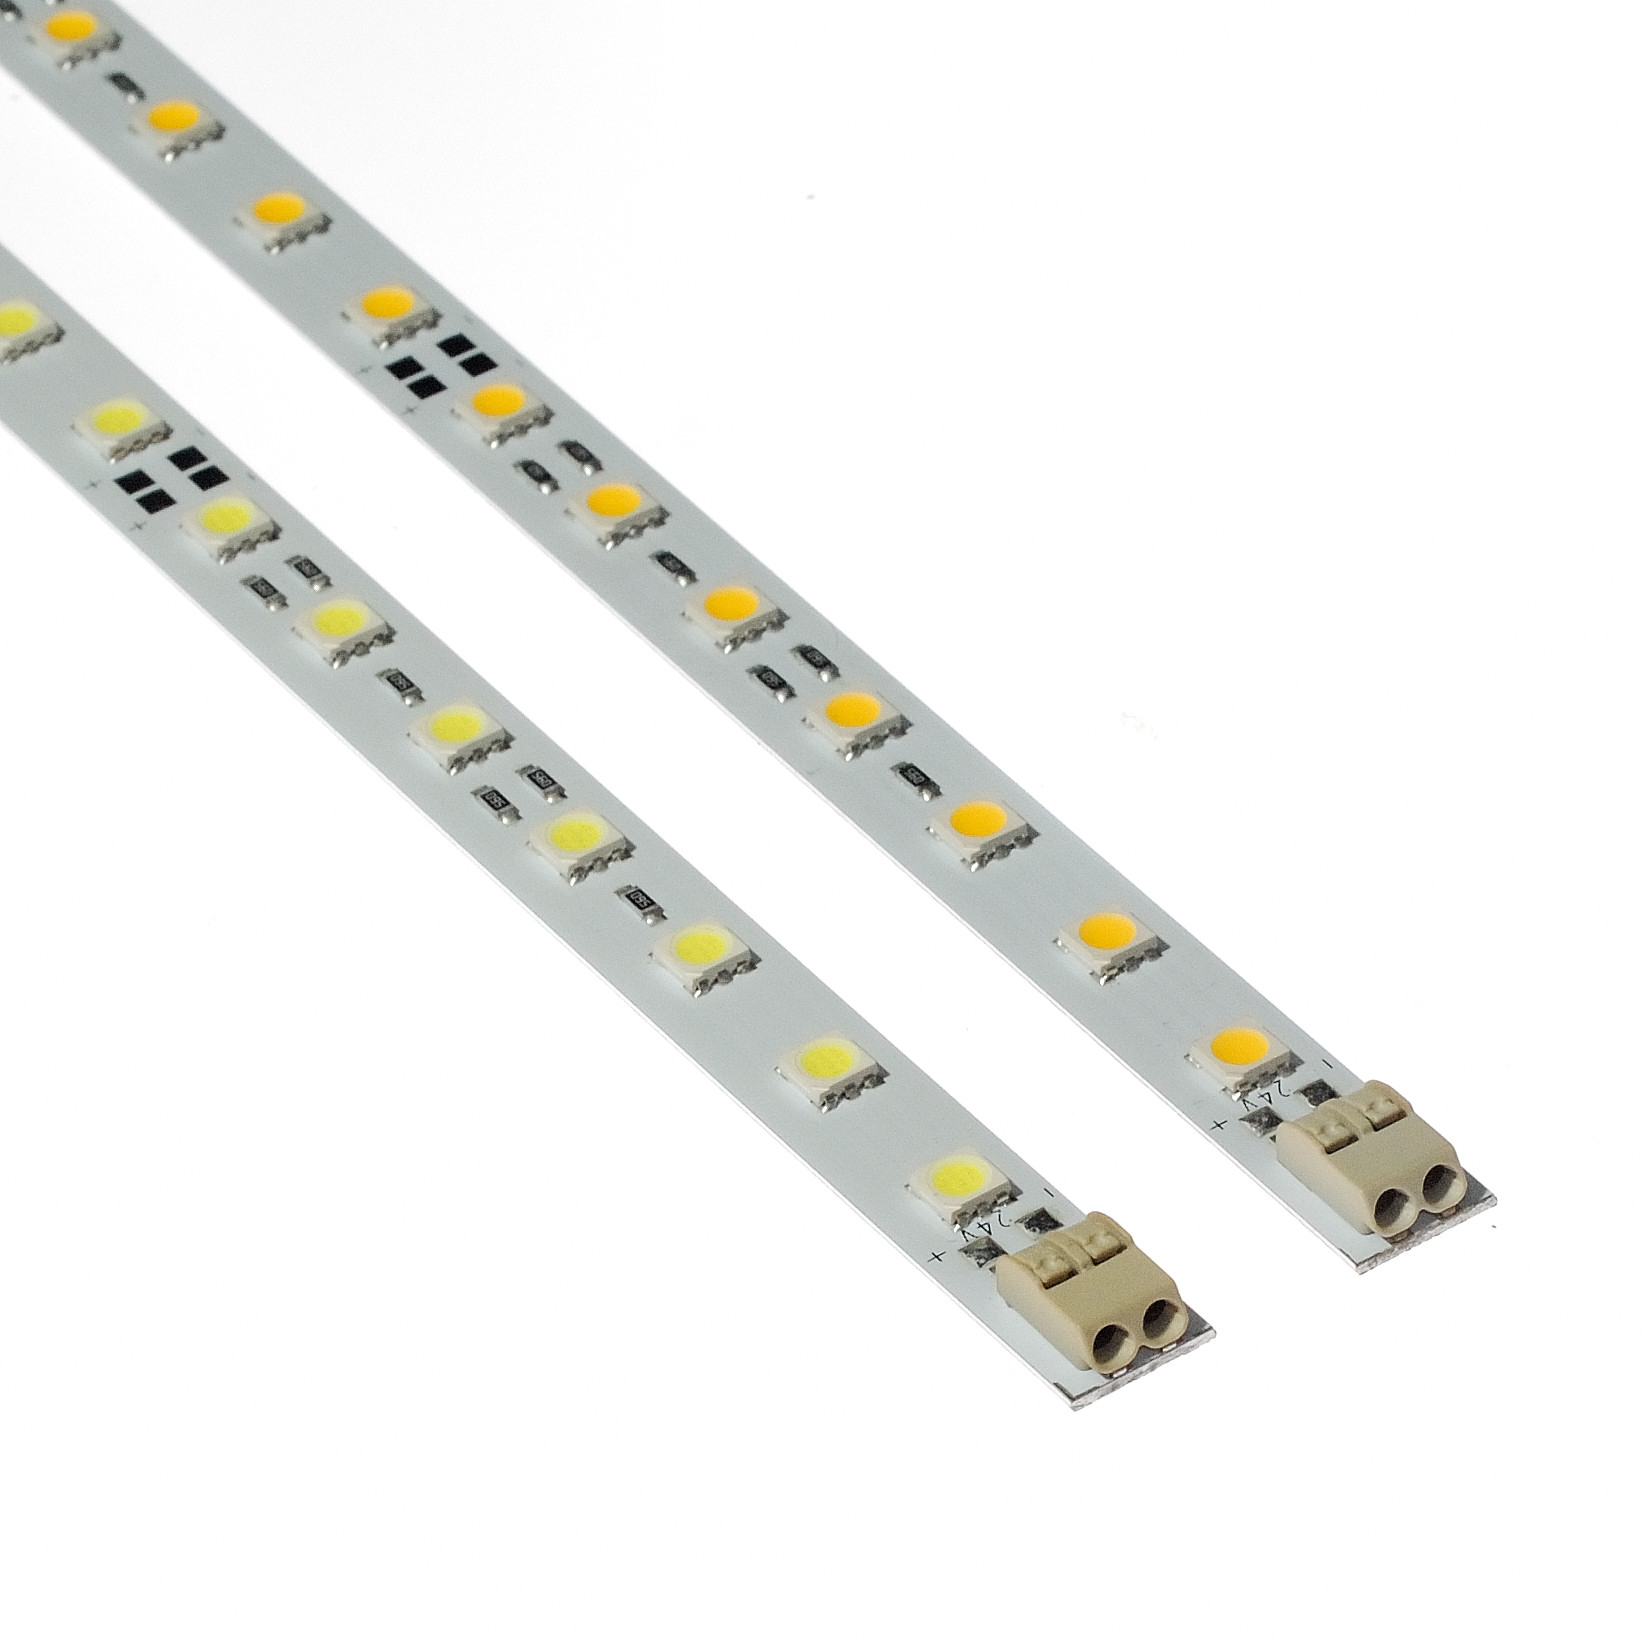 Led White Rigid Led Light Bar Warm White Strip Light Rigid Lighting For Sale